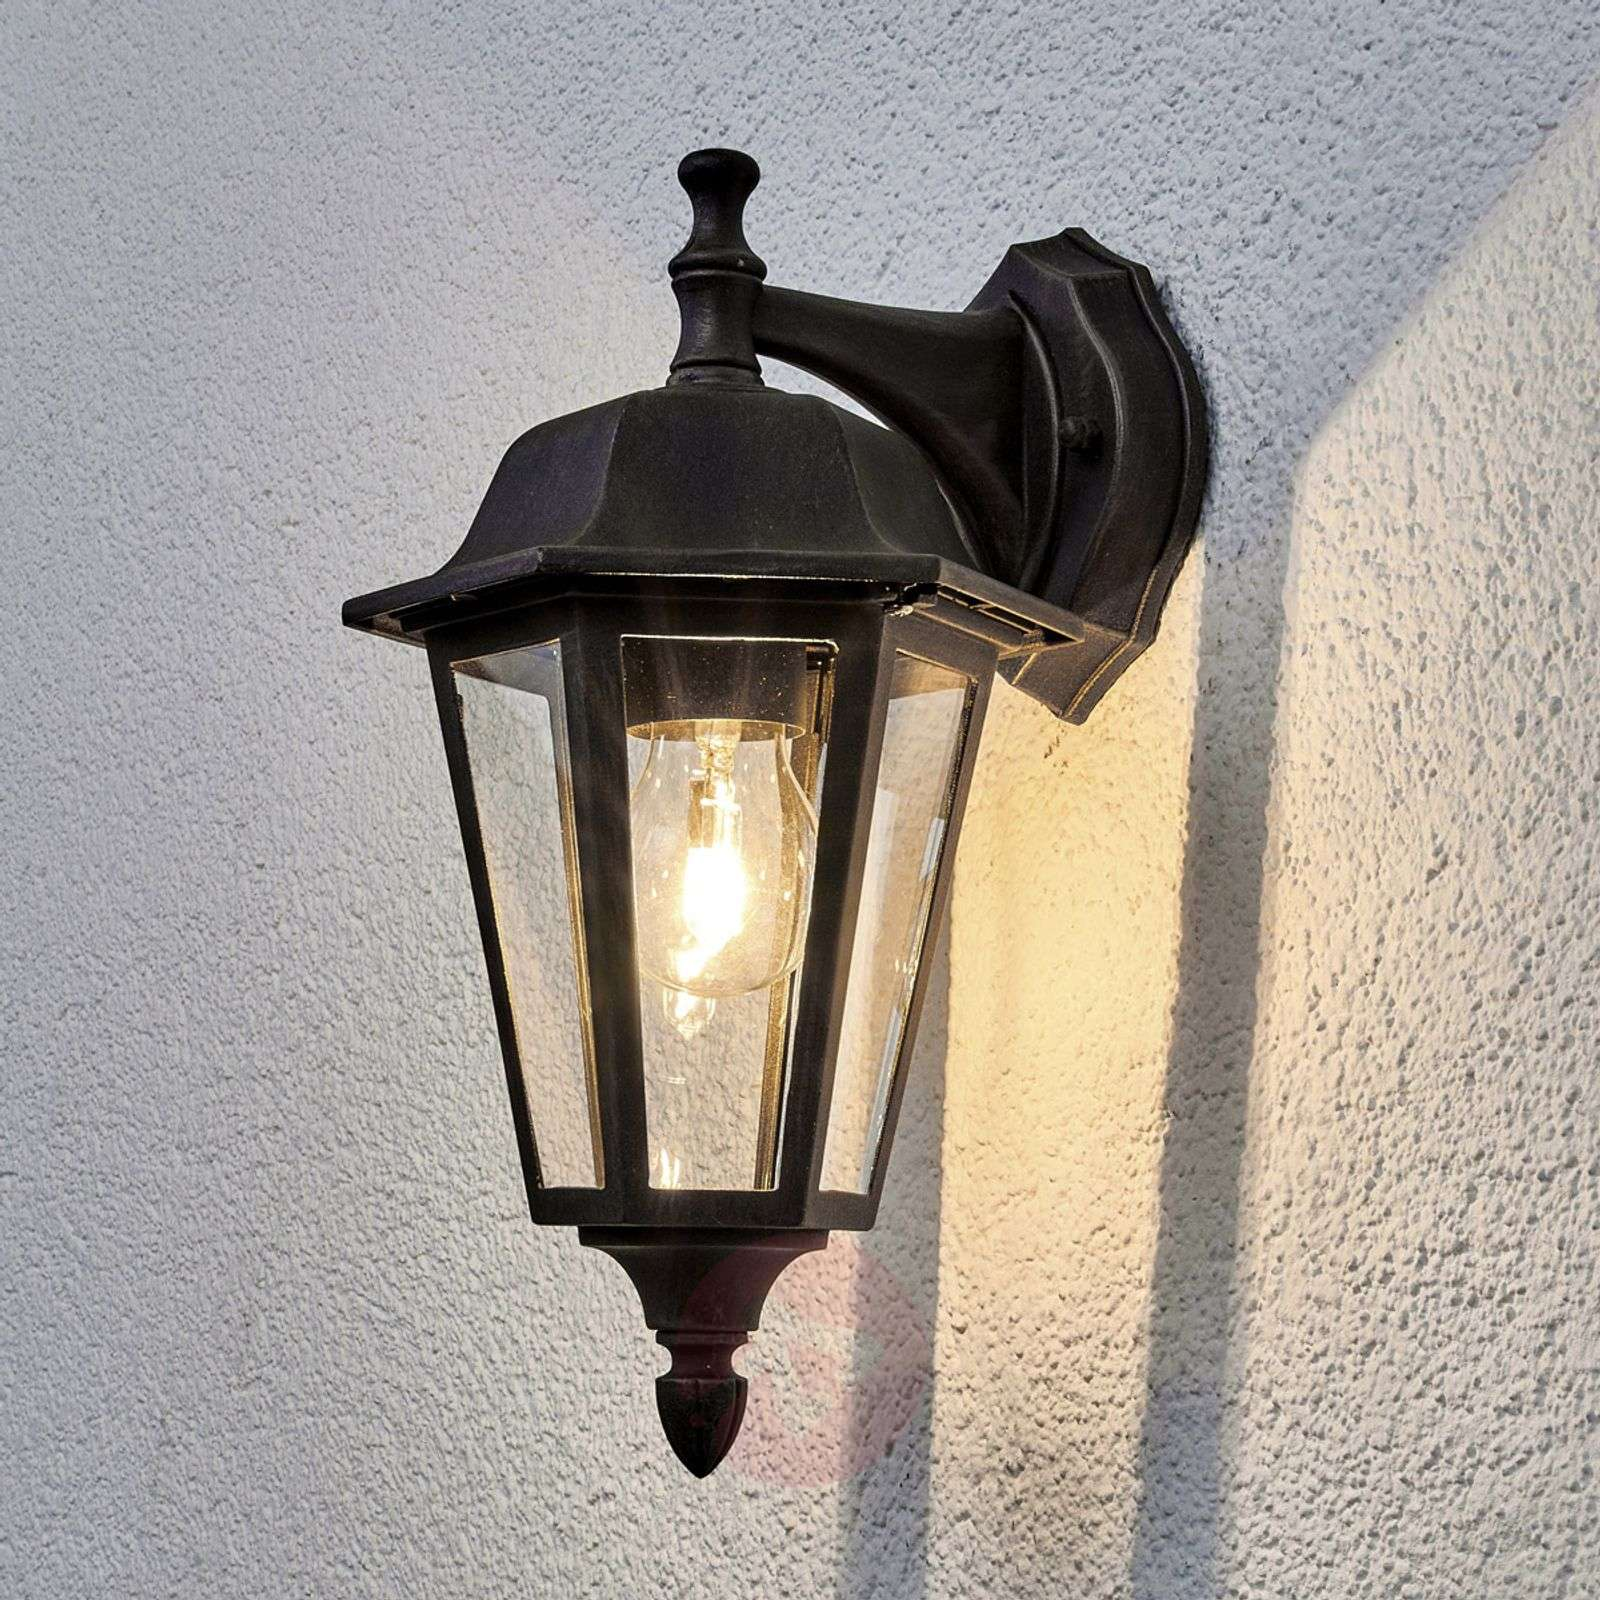 Acquista applique da esterno lamina color ruggine lampade.it